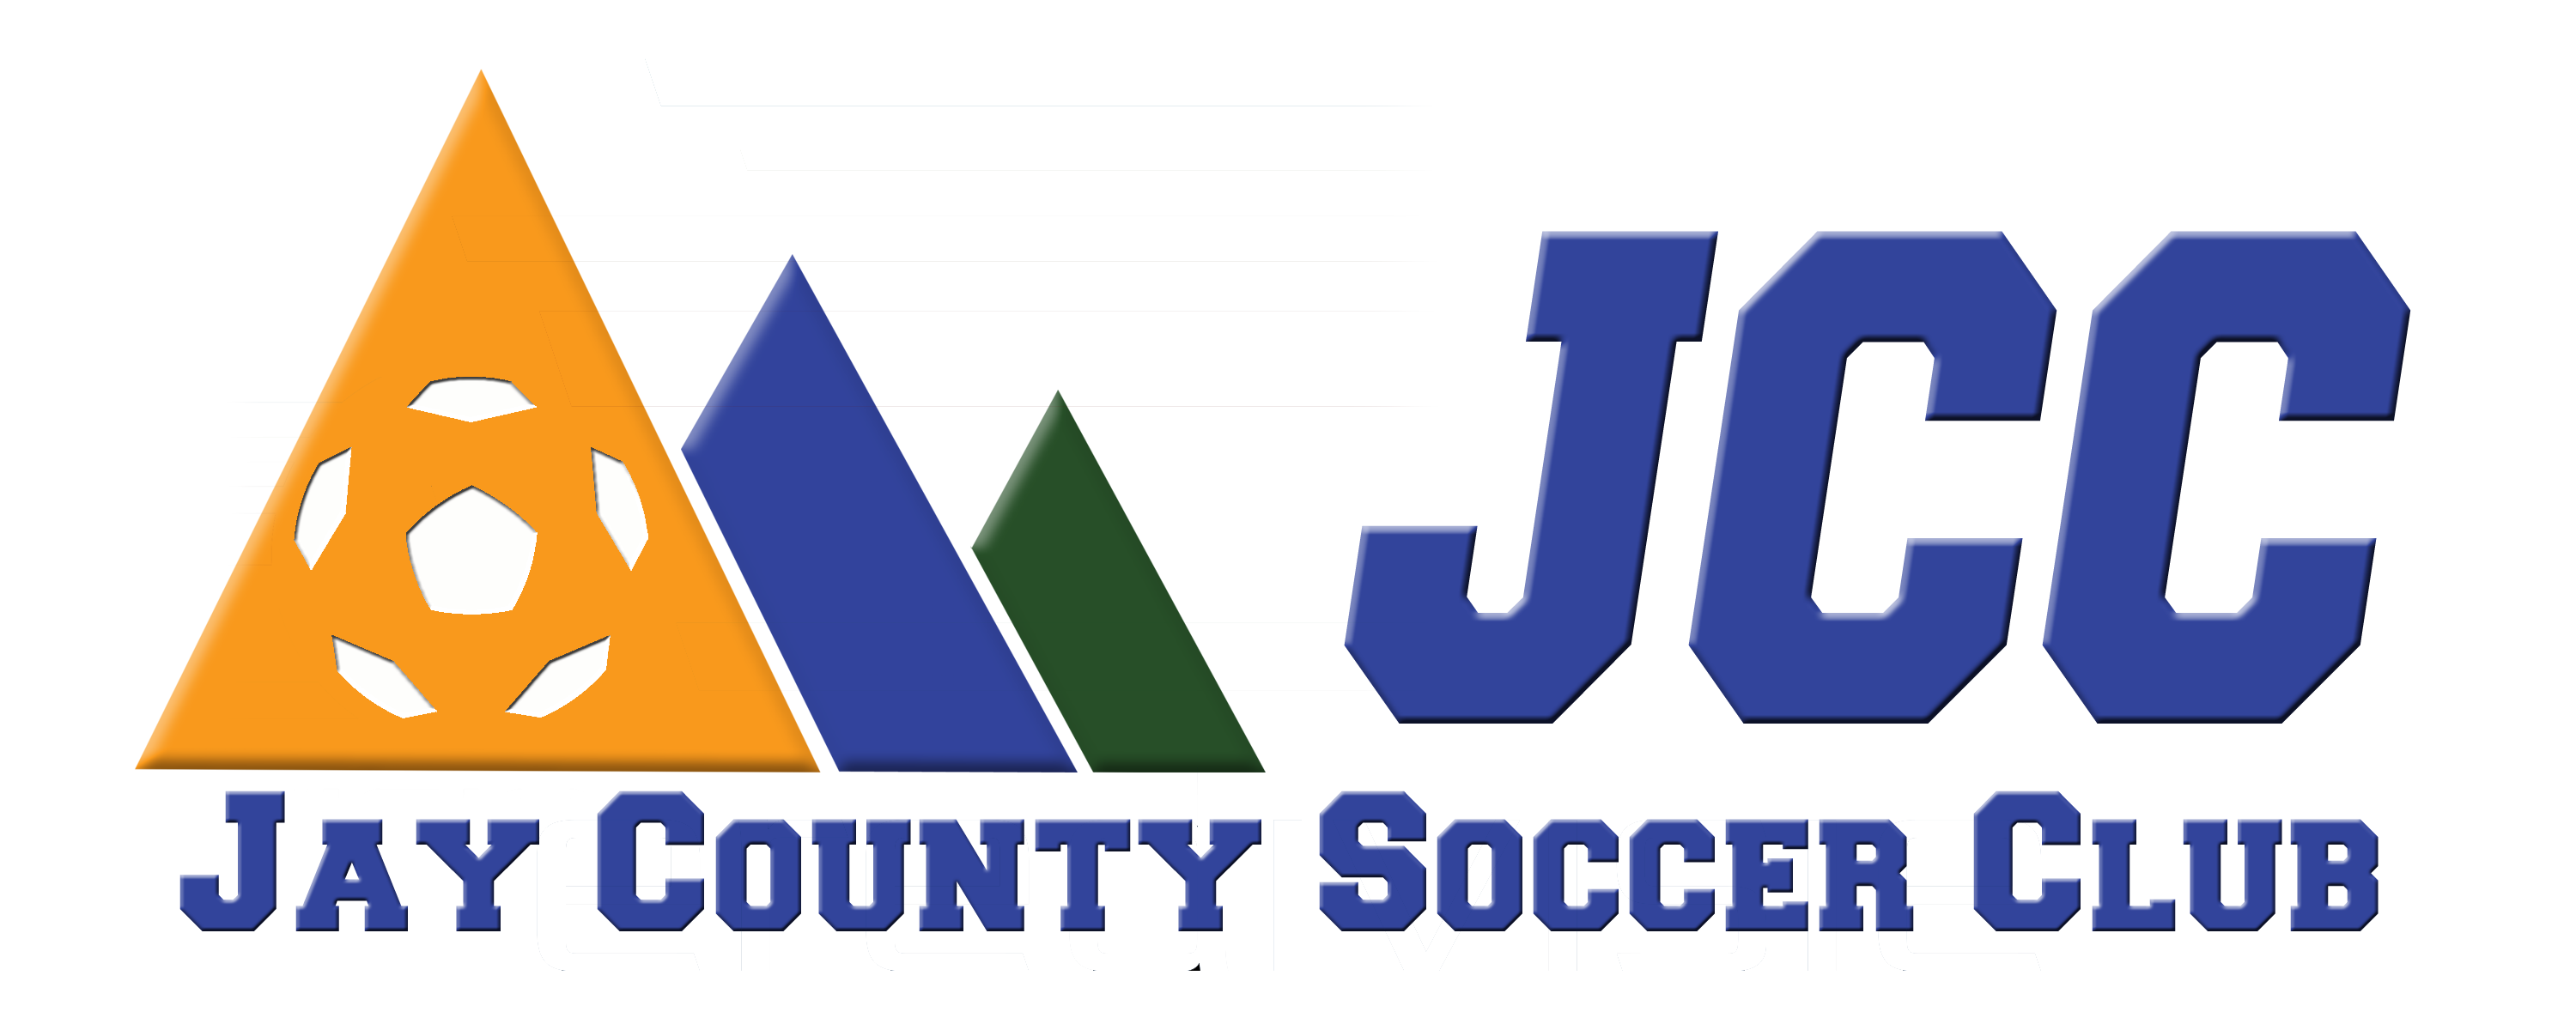 Jay County Soccer Club